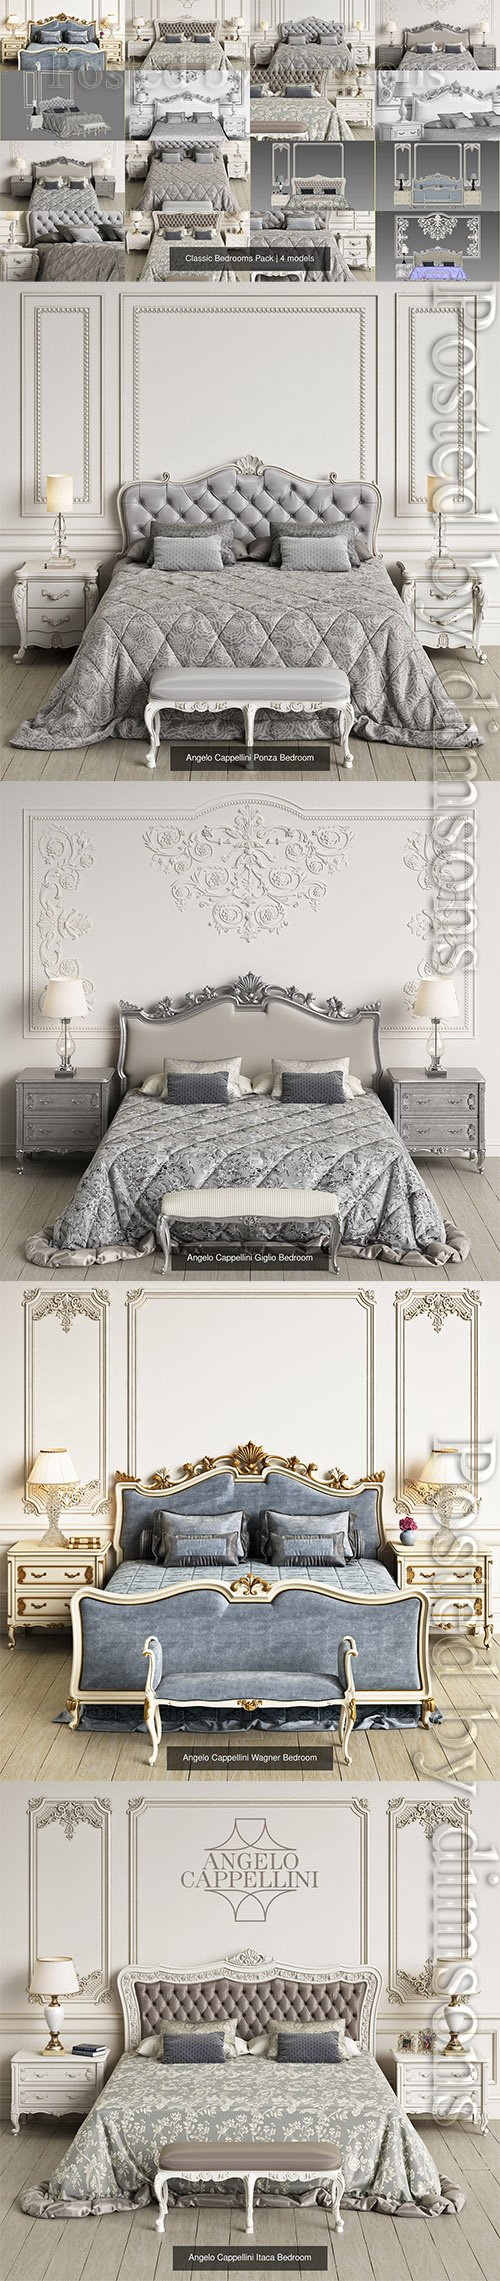 Classic Bedrooms Pack 3D Model Collection